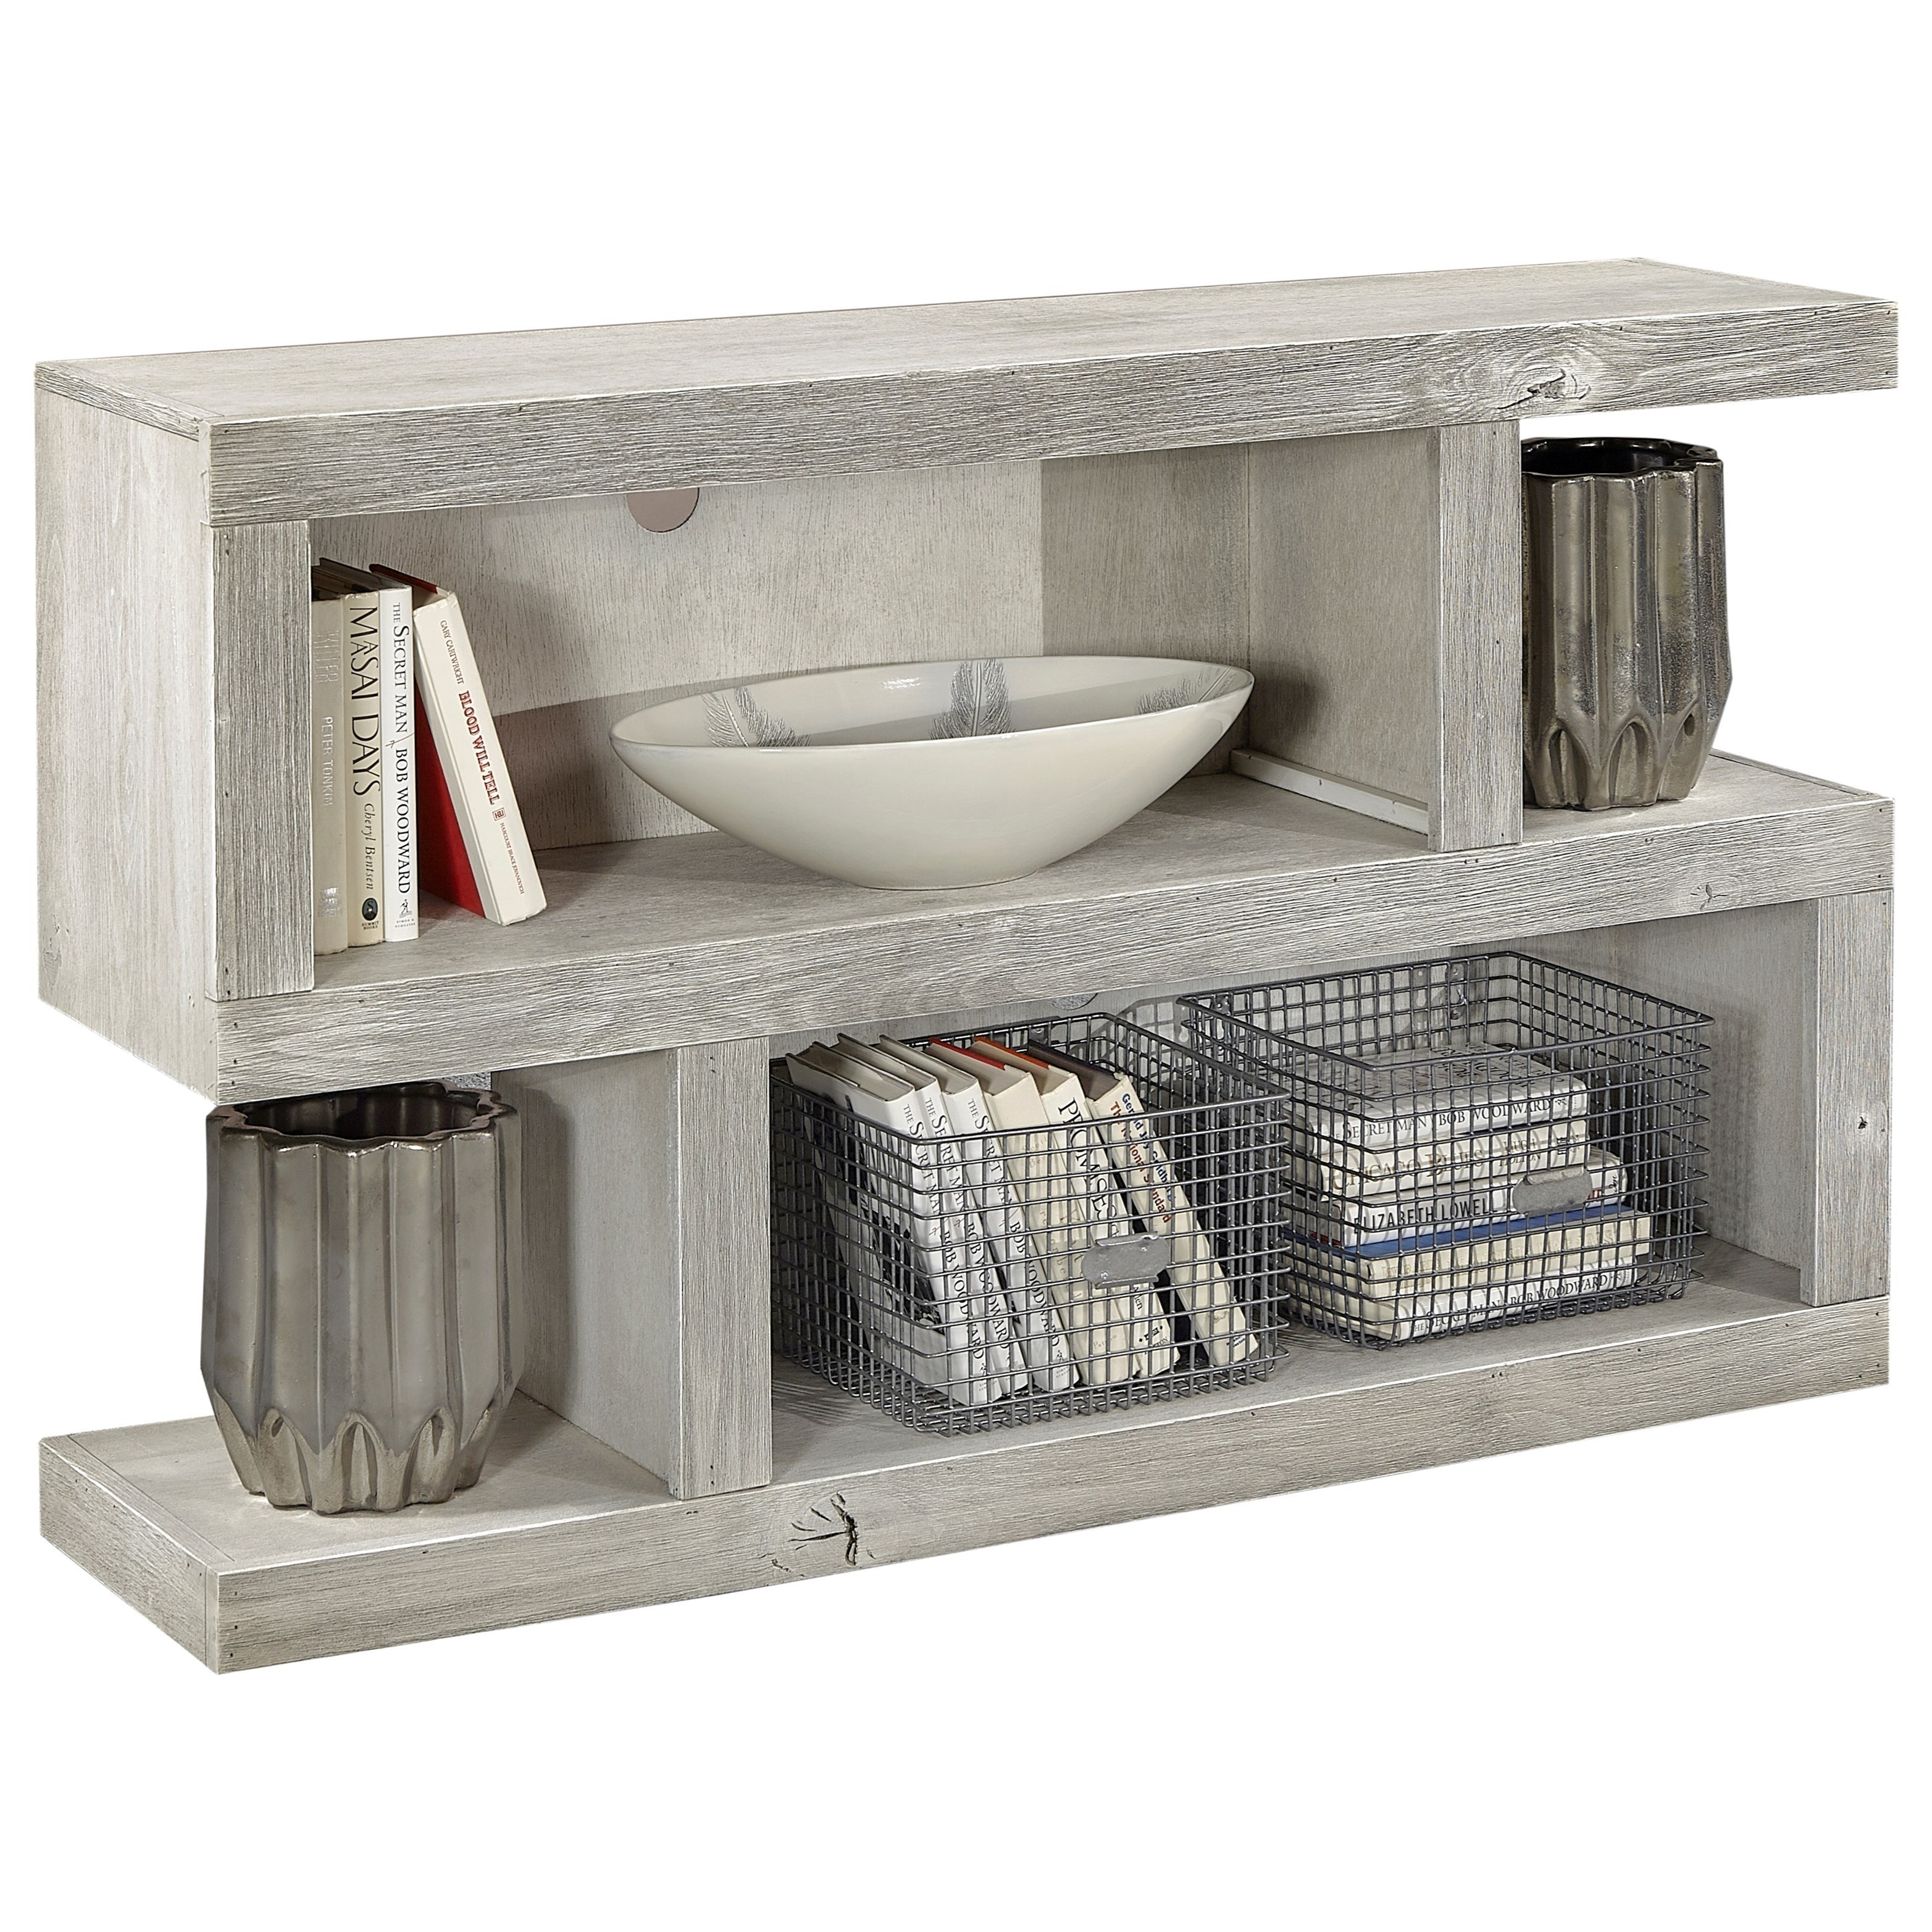 Contemporary Sofa Table with Extra Shelf Space